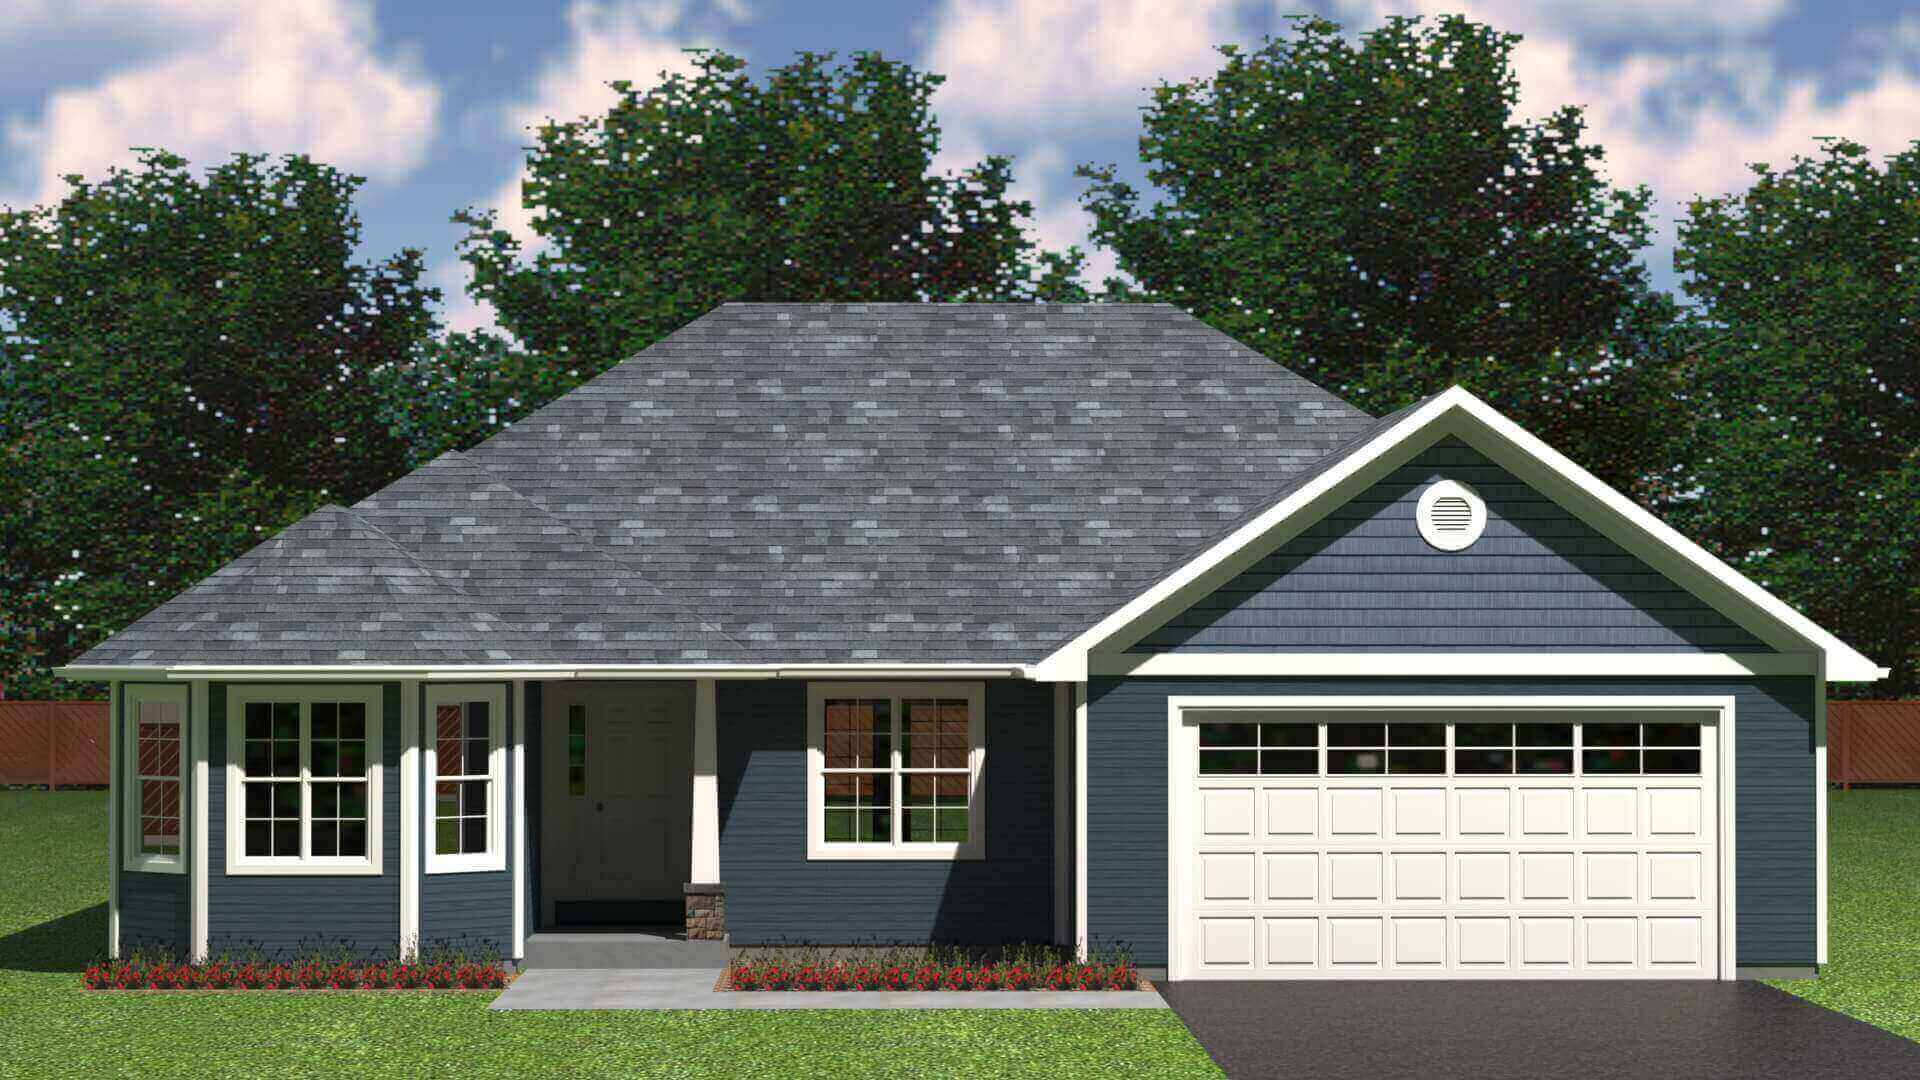 2081 sq.ft. timber mart house 3 bed 2 bath exterior render